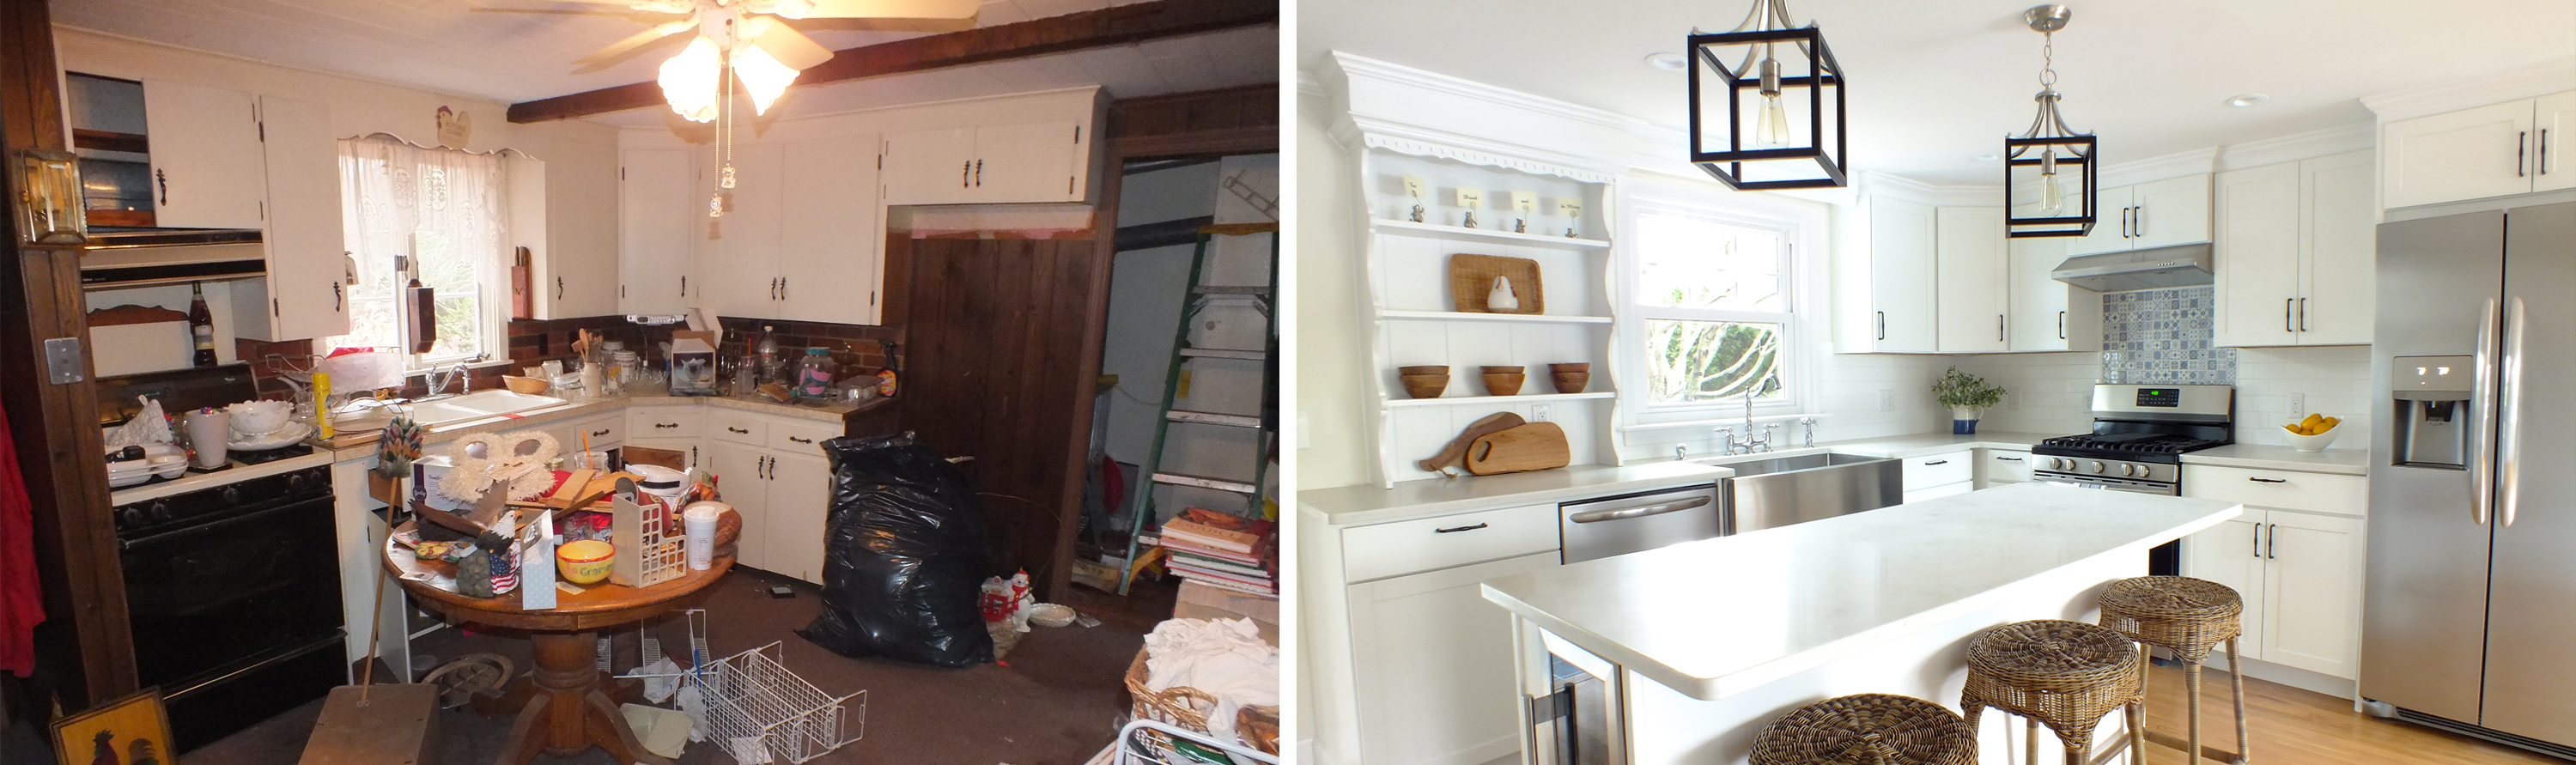 Cluttered Ranch Renovation